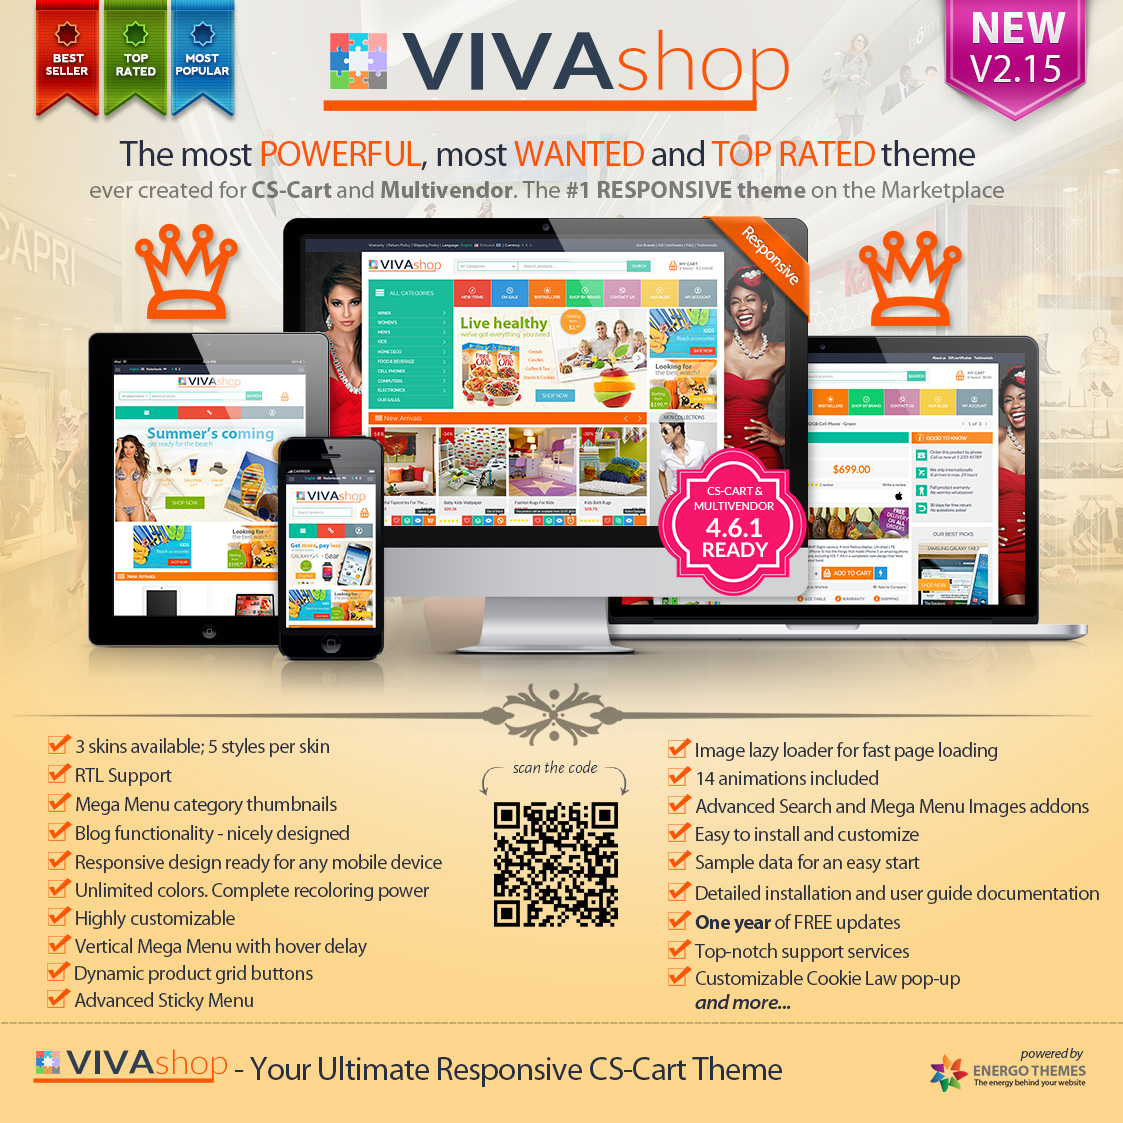 VIVAshop-V2.15-presentation-page-MP.jpg